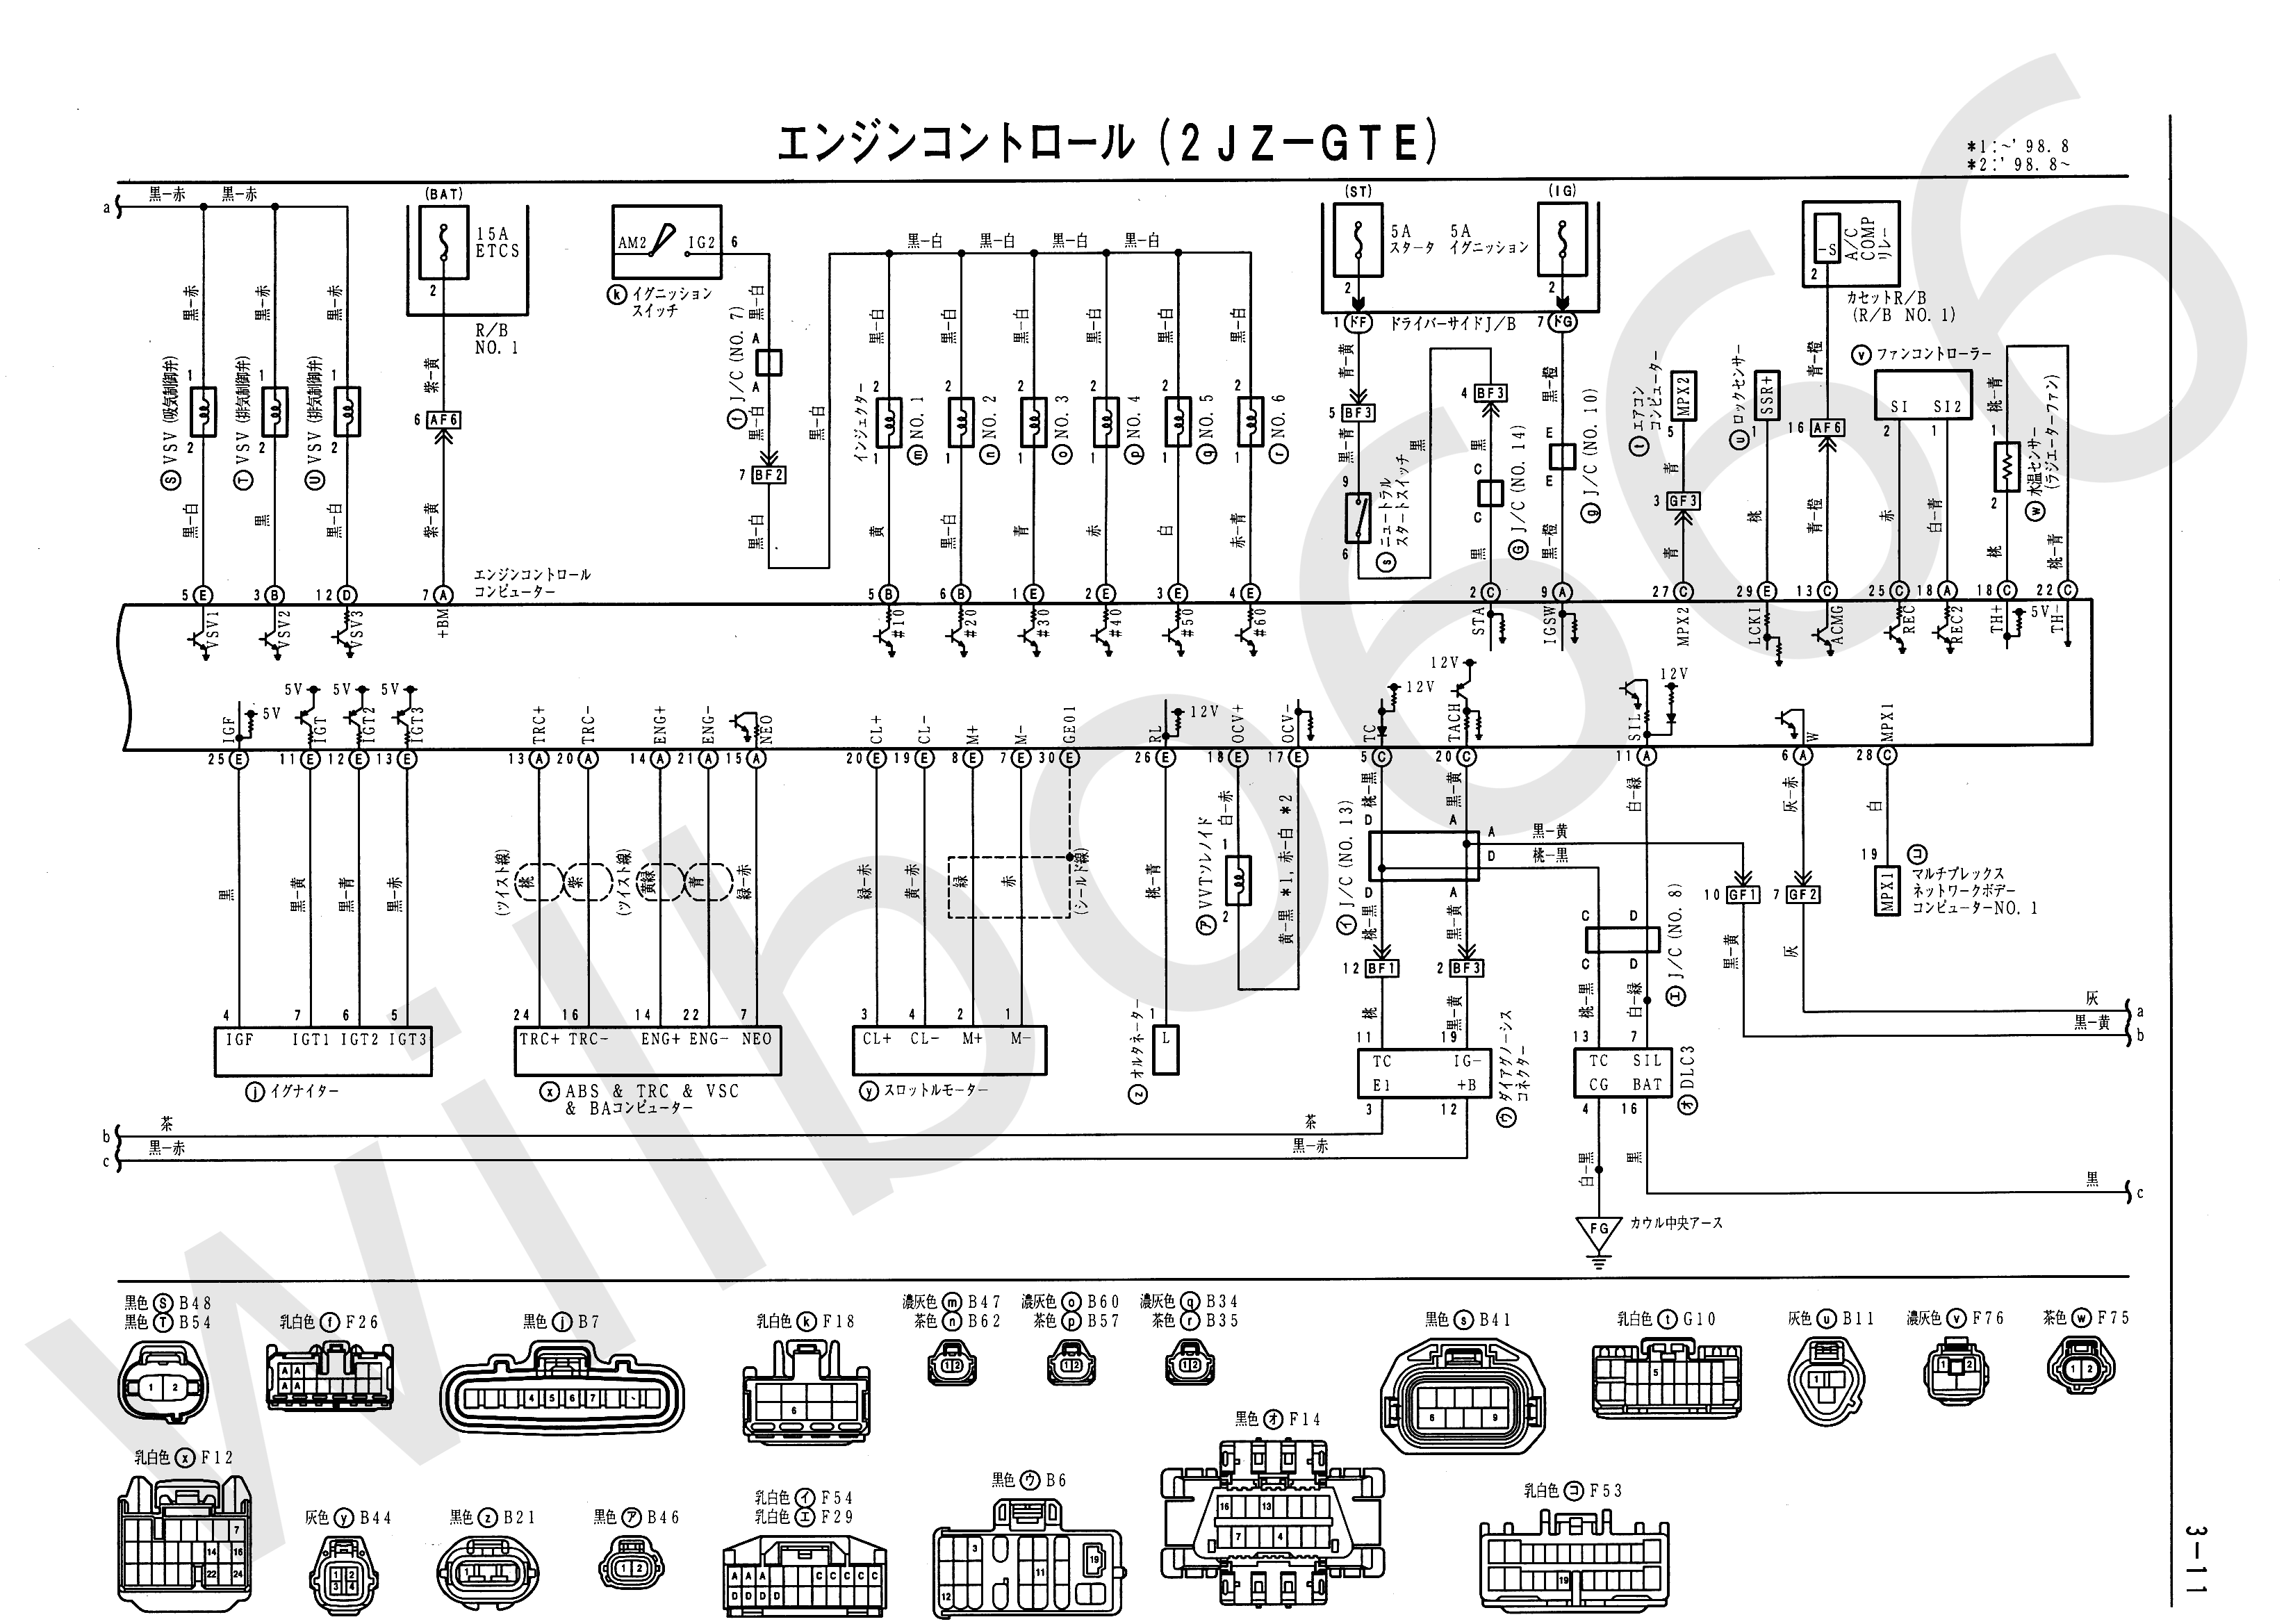 JZS161 Electrical Wiring Diagram 6748505 3 11 wilbo666 2jz gte vvti jzs161 aristo engine wiring 2jzgte wiring diagram at mifinder.co